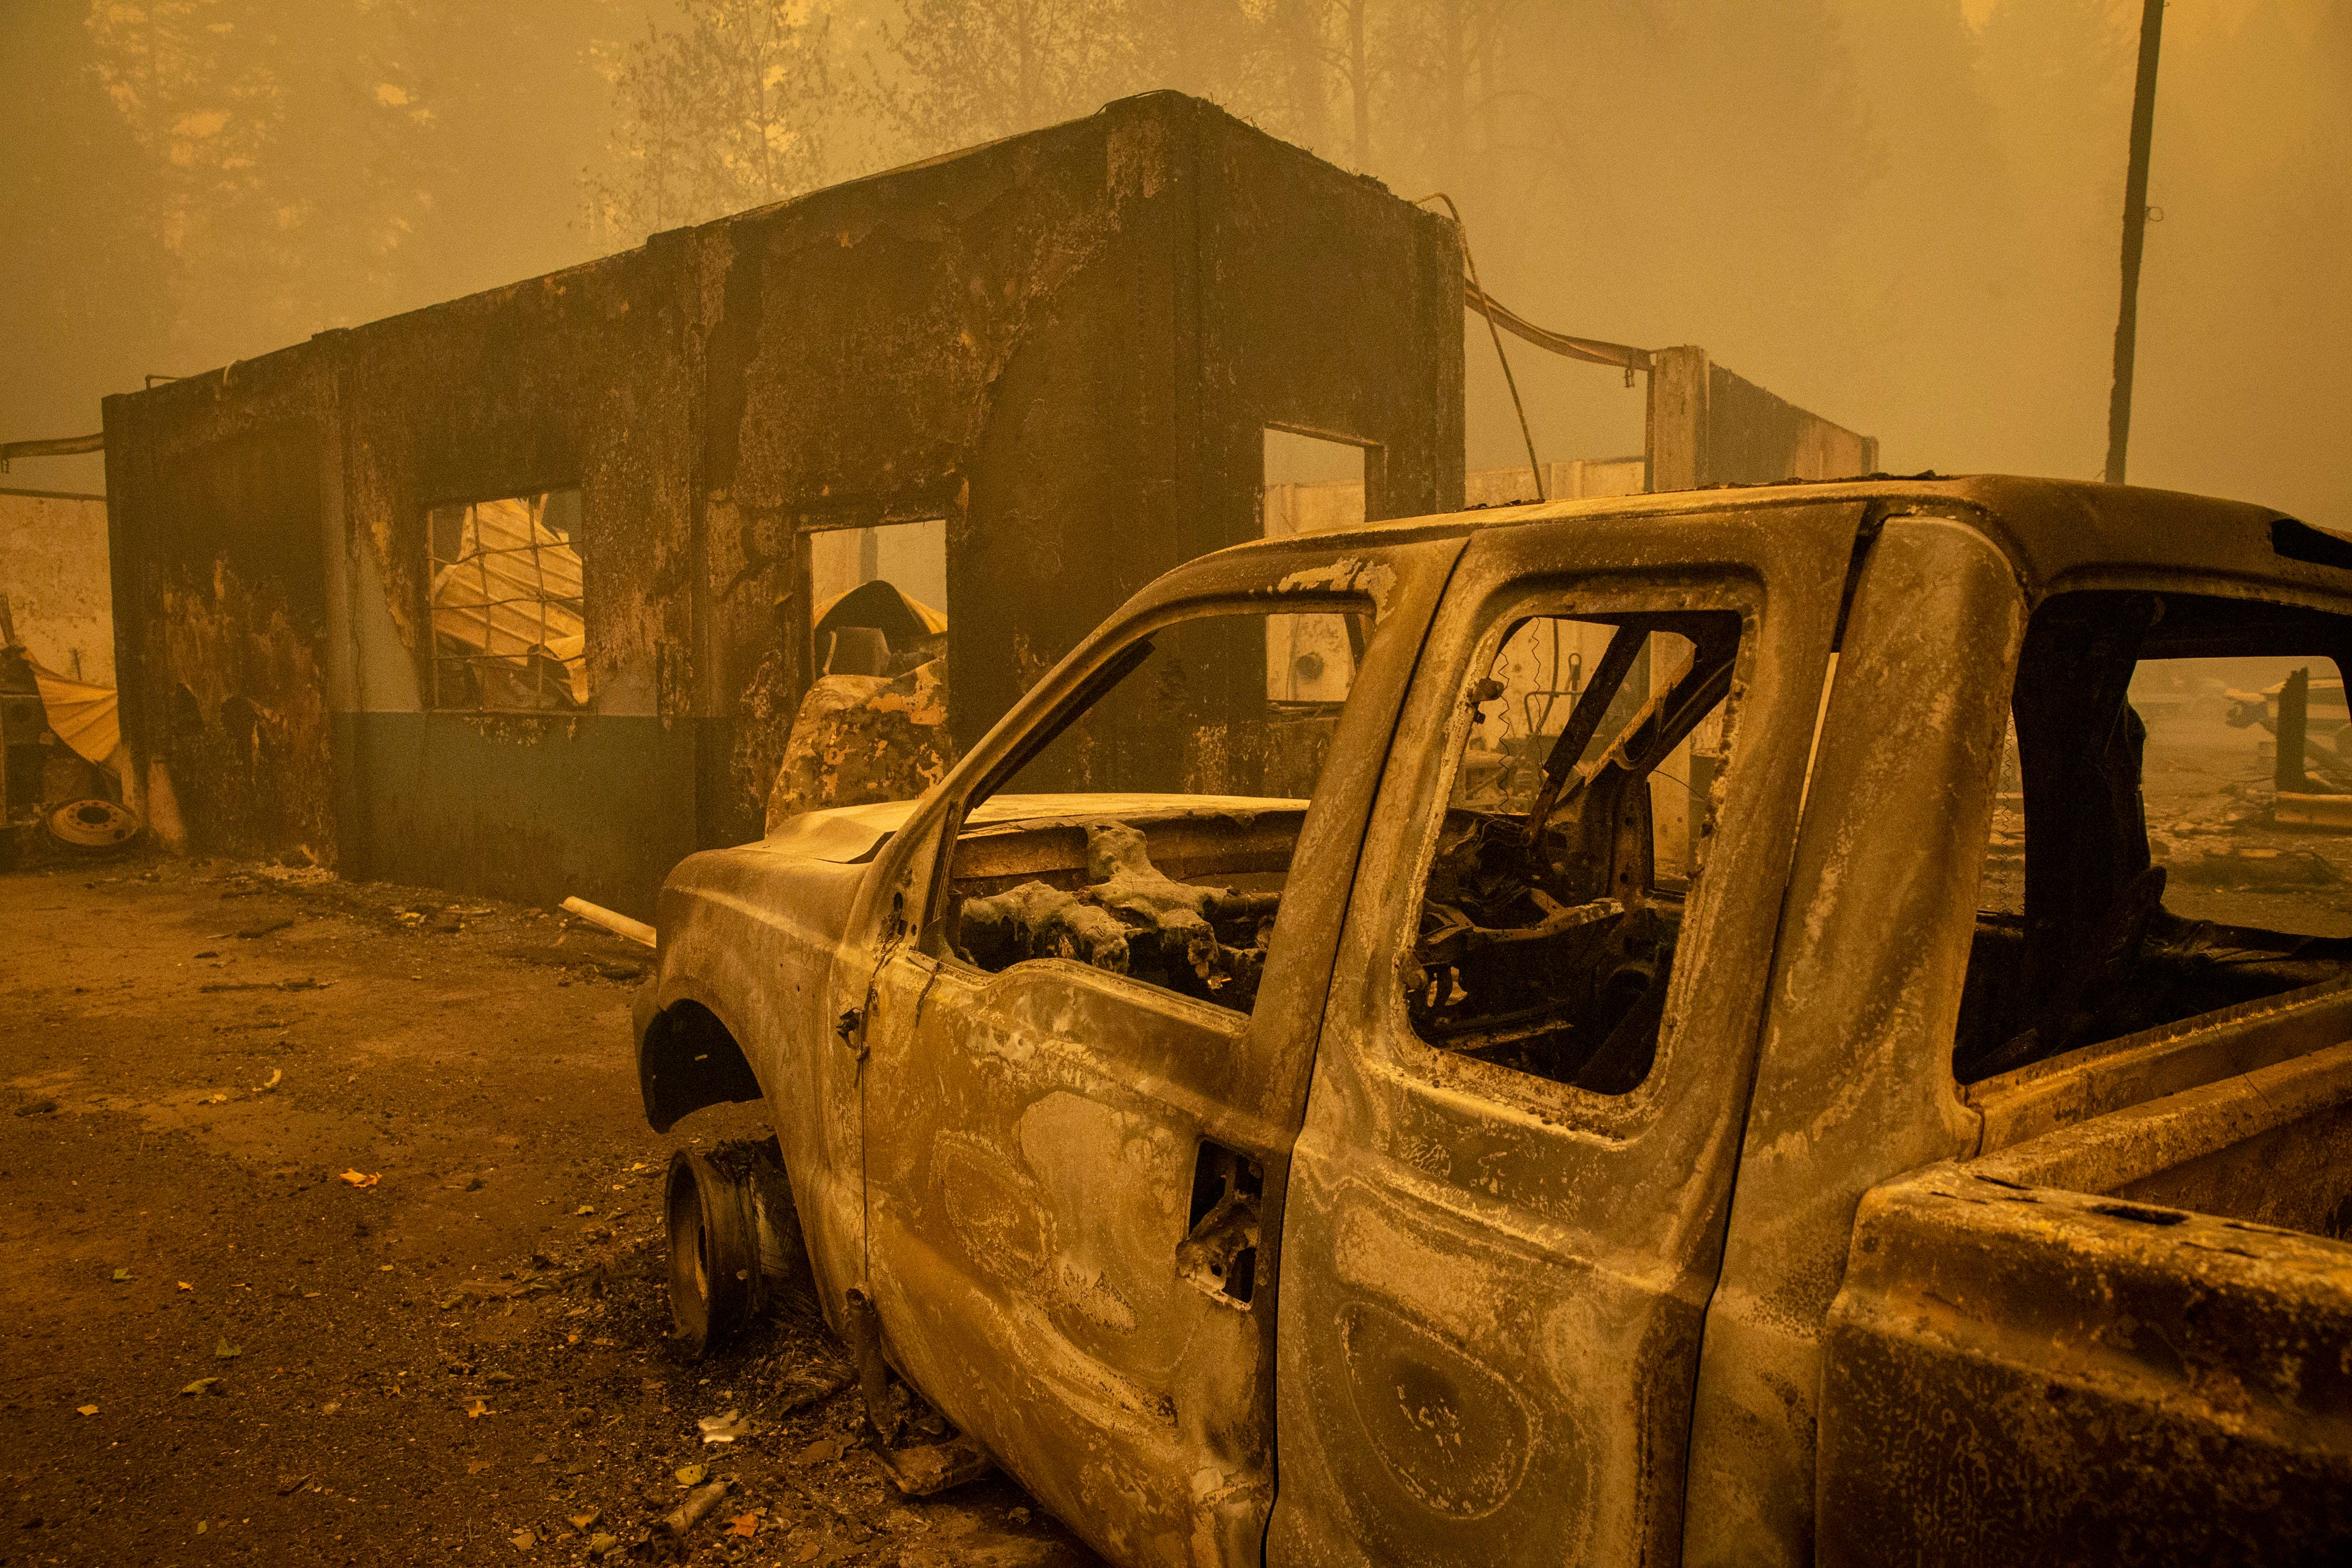 We have never seen this : 10% of Oregon faces evacuation; death toll at 26 from Western wildfires